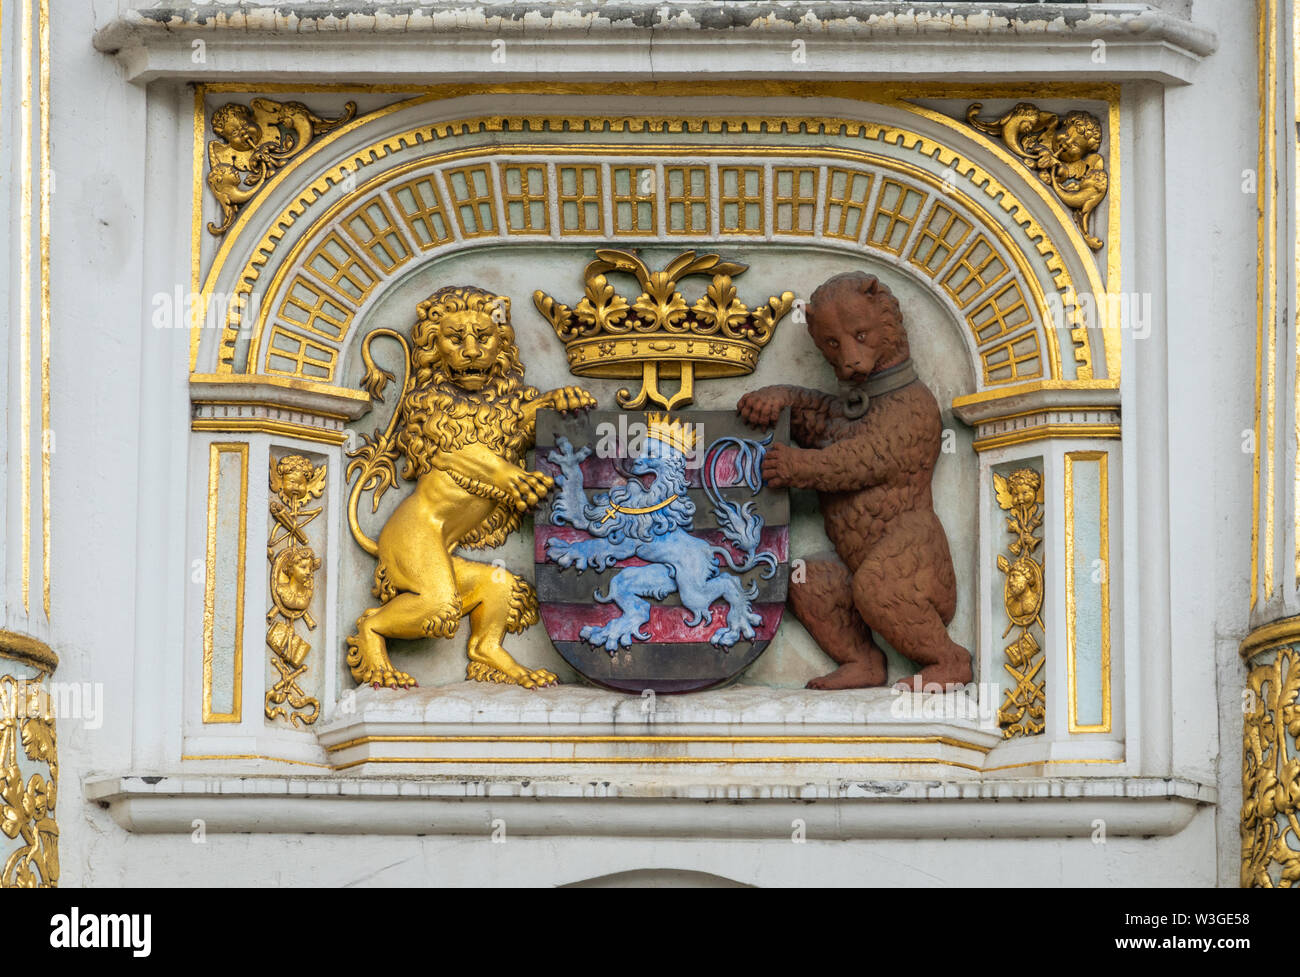 Bruges, Flanders, Belgium -  June 16, 2019: Coat of arms of the city with gold, blue, white, black and brown images of lion and bear. Set in facade. - Stock Image